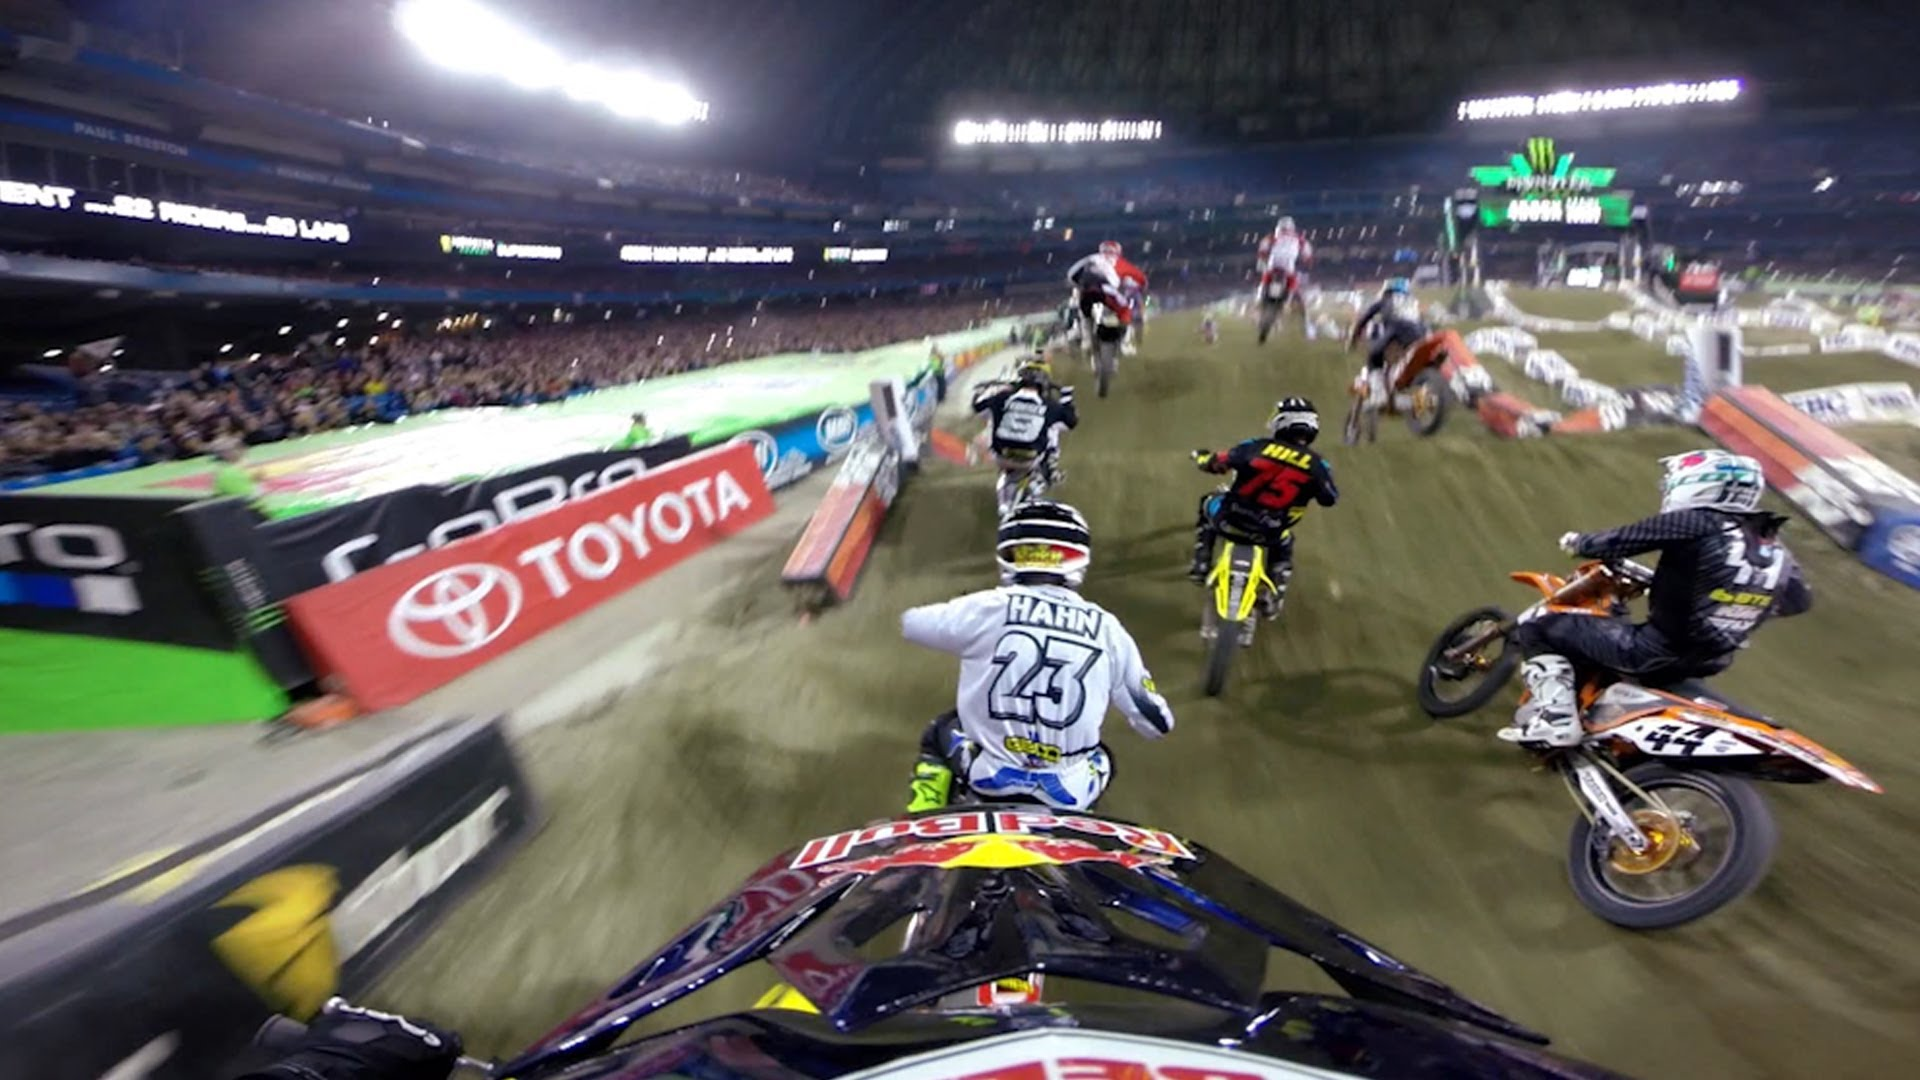 GoPro James Stewart z 14 miejsca na 1 - Toronto Supercross